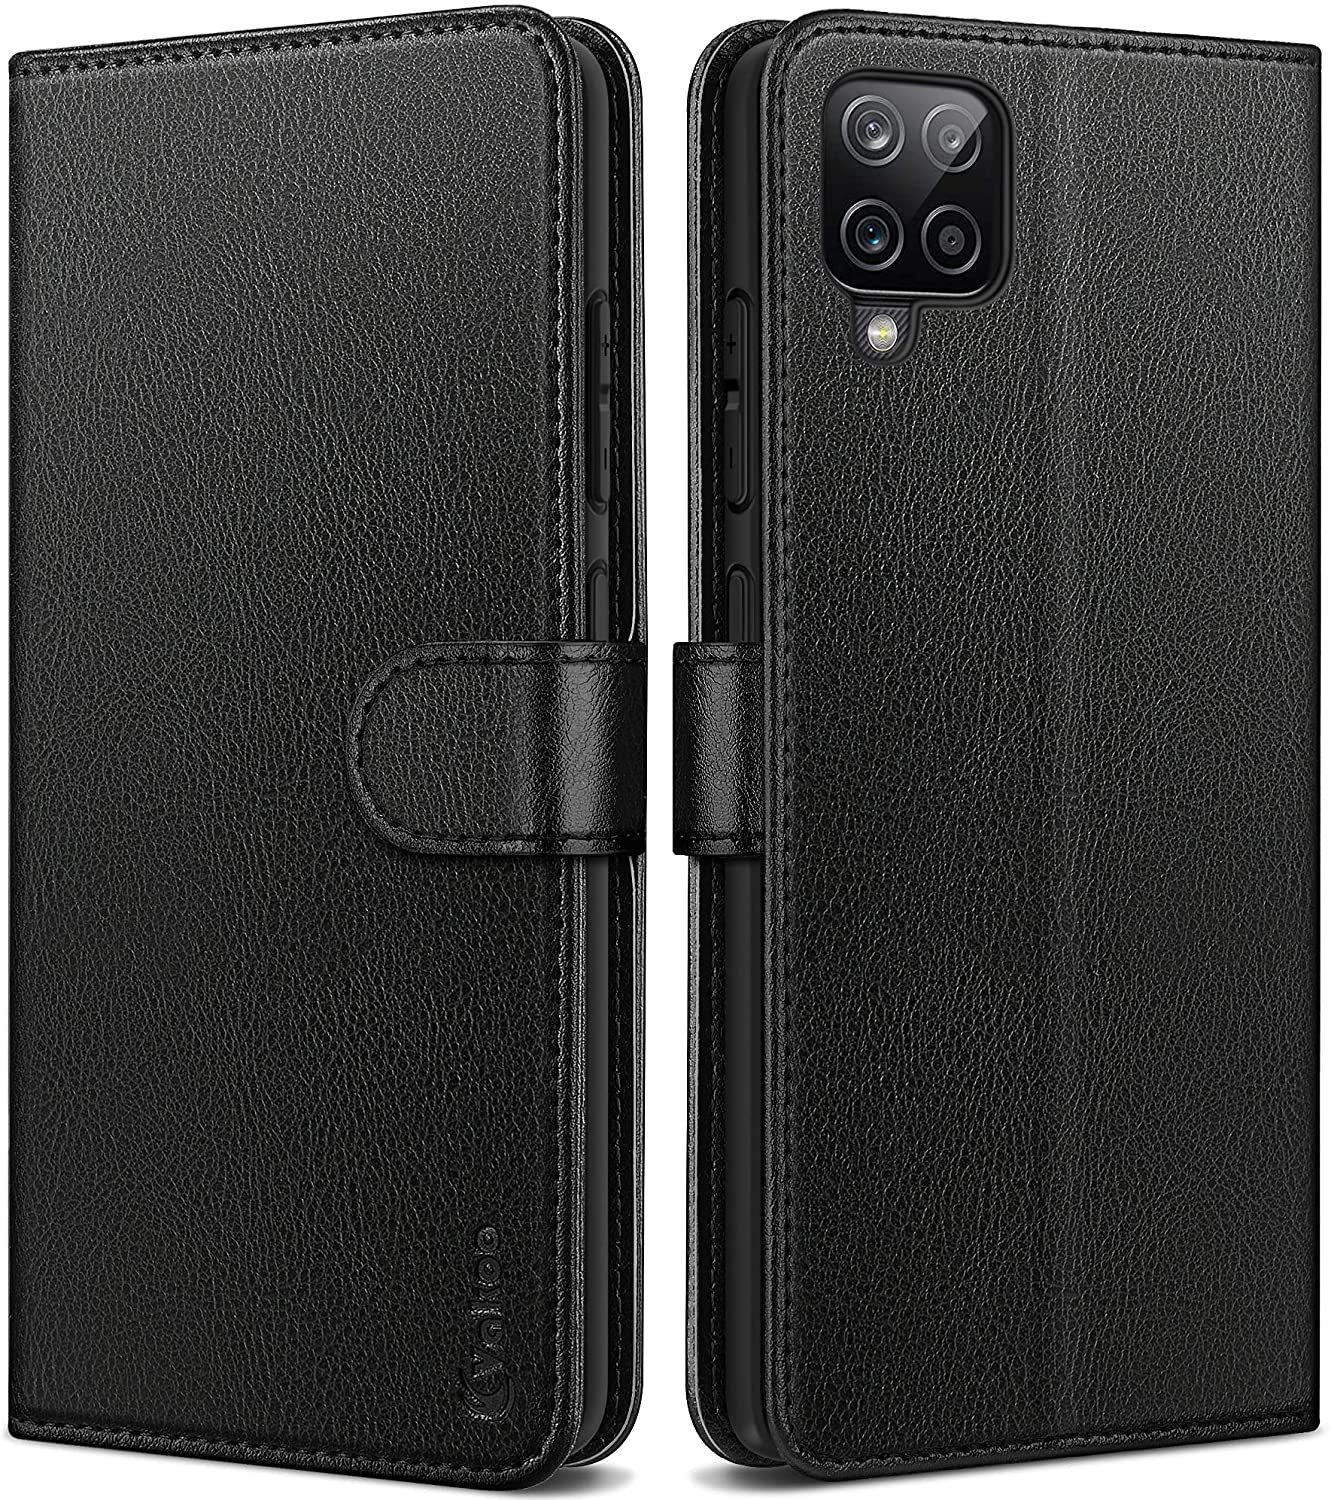 Galaxy A12 Case, Samsung A12 Case, Vakoo Wallet Series PU Leather Flip Phone Cover for Samsung Galaxy A12 Phone Case with Card Holder - Black